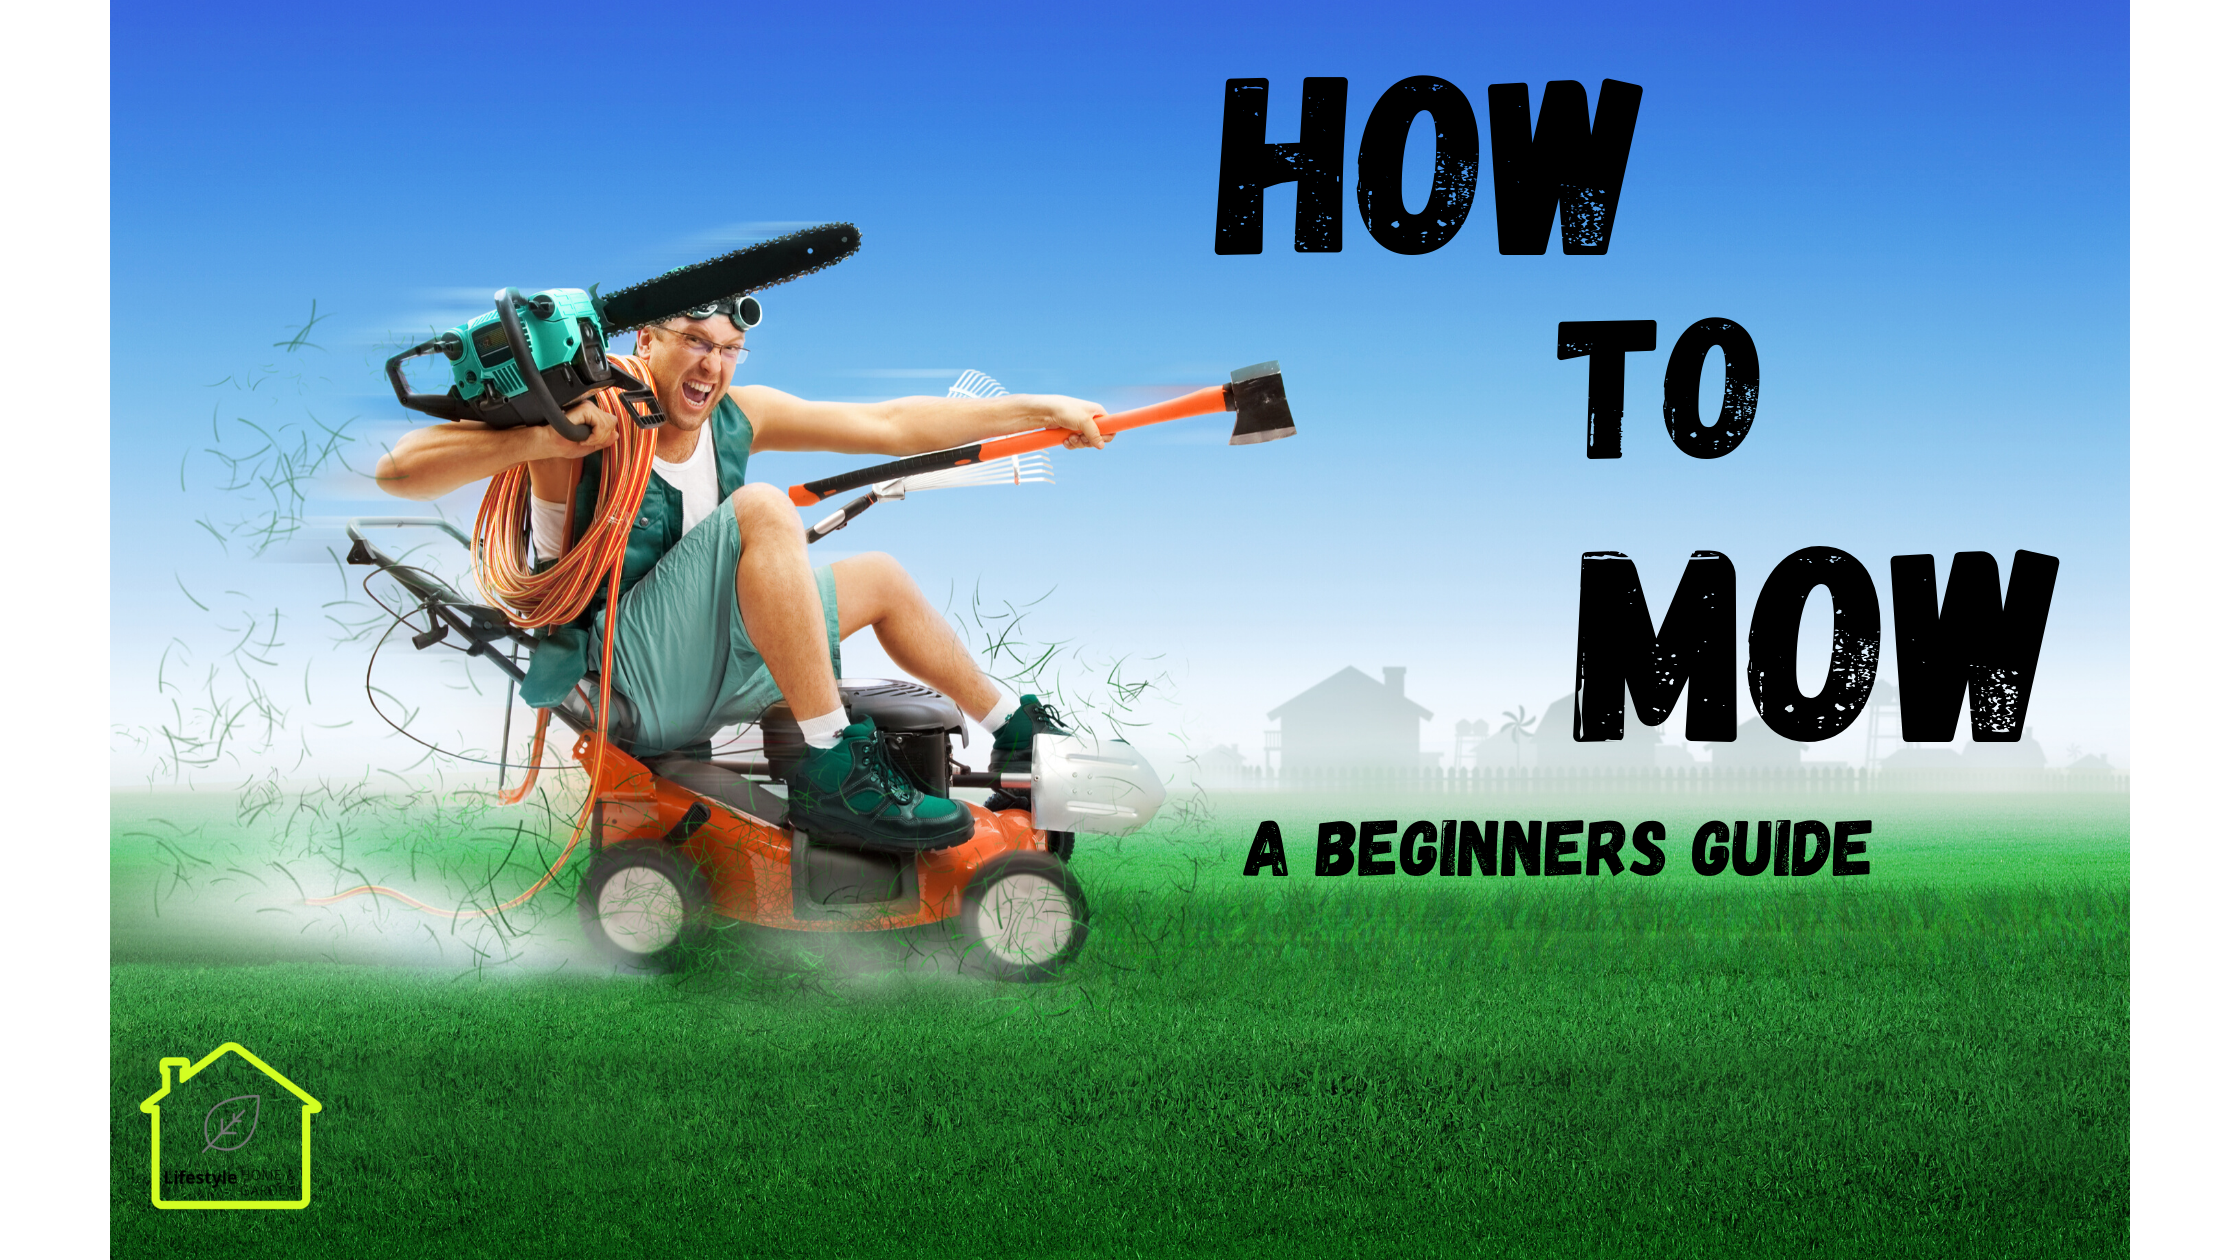 The latest Blog post from Lifestylehng.co.uk 'How to Mow' is a blog all about mowing, from when to mow to which mower type best suits your needs. Your lawn mower will be one of your most-used pieces of power equipment, so you must take the time to research which kind of mower will suit your needs best.  #gardeningbasic #howto #gardeningguide #gardening #lawnmower #gardenblog #grass #lawncare #lawn #beginnersGuide #gardeningguides #howto #guide #basics #gardenbasics #gardeningbasics